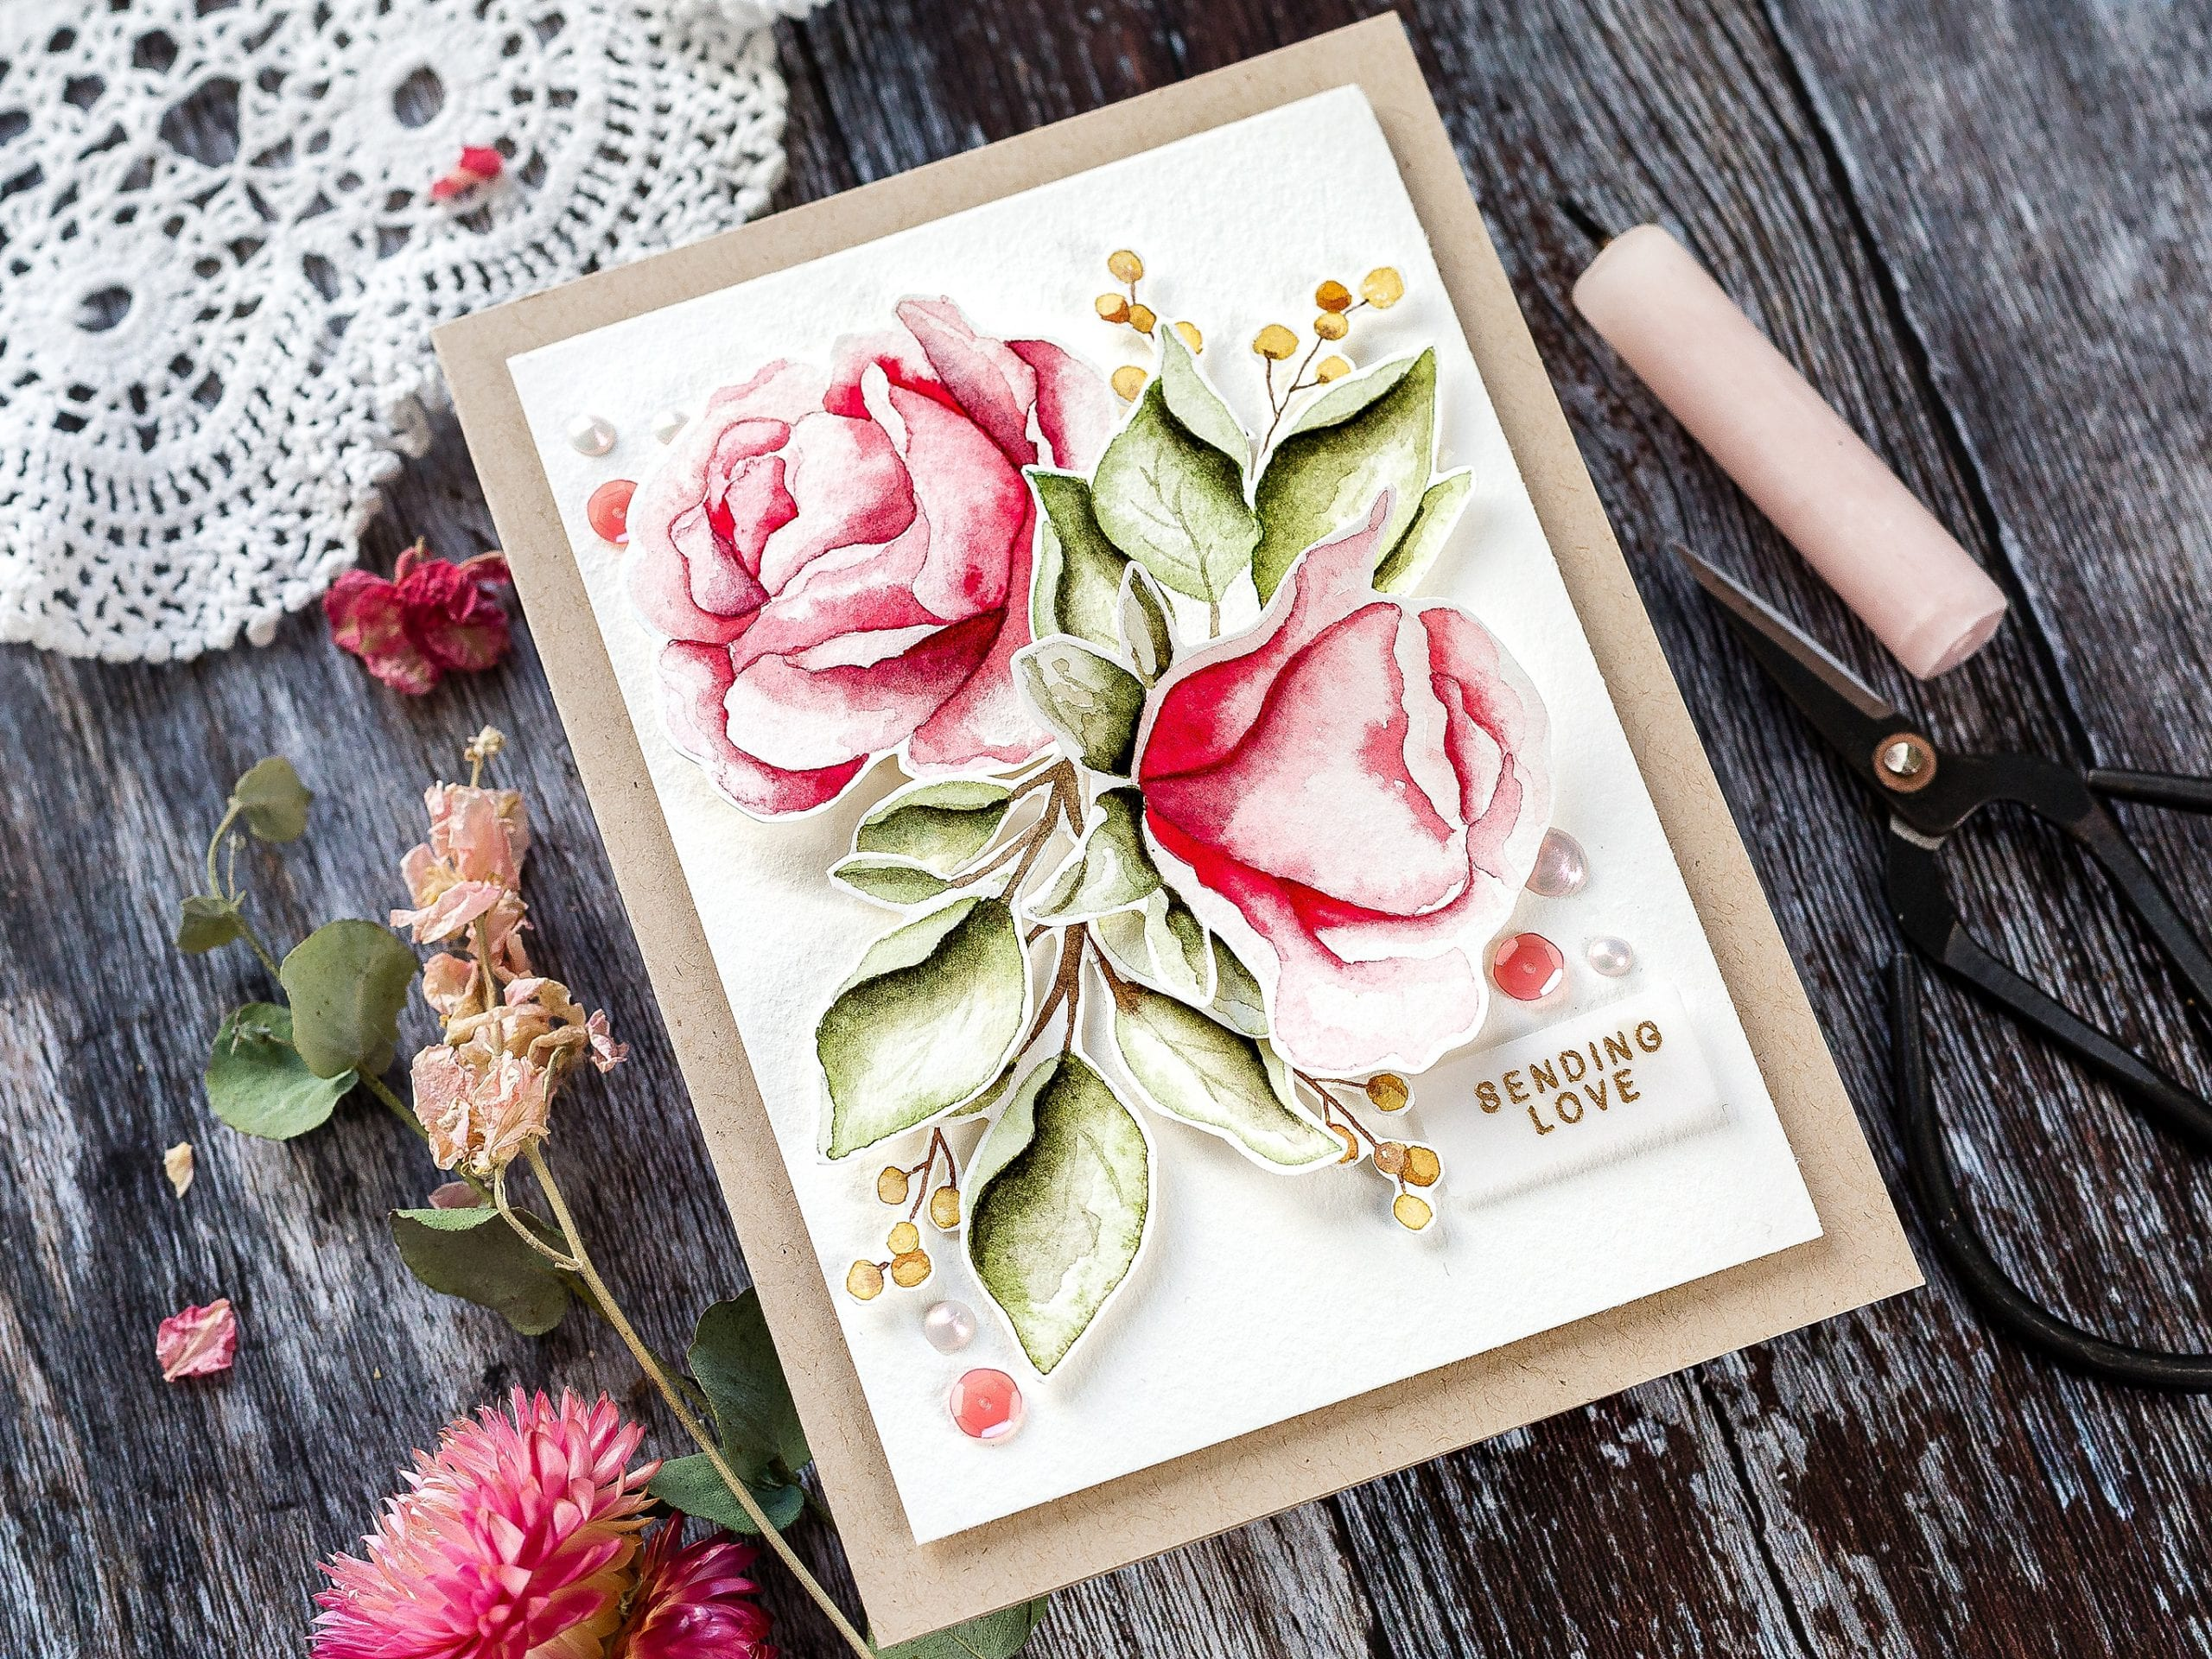 Watercoloured roses tutorial. Handmade card by Debby Hughes using supplies from Simon Says Stamp #watercolor #homemade #tutorial